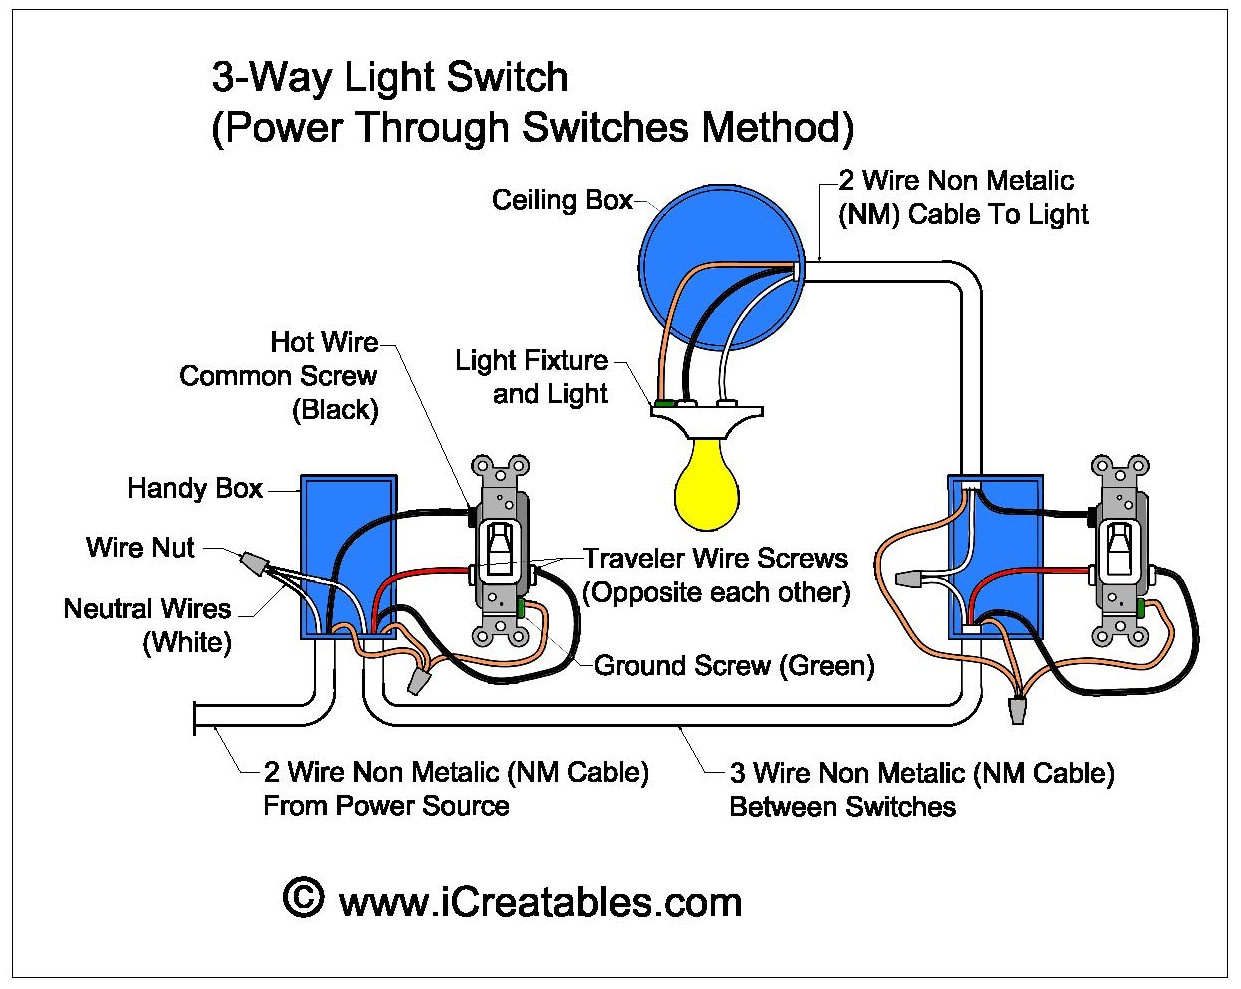 www icreatables com images electricalimgs wiring t rh dancesalsa co shed wiring diagram australia shed electrical wiring diagram